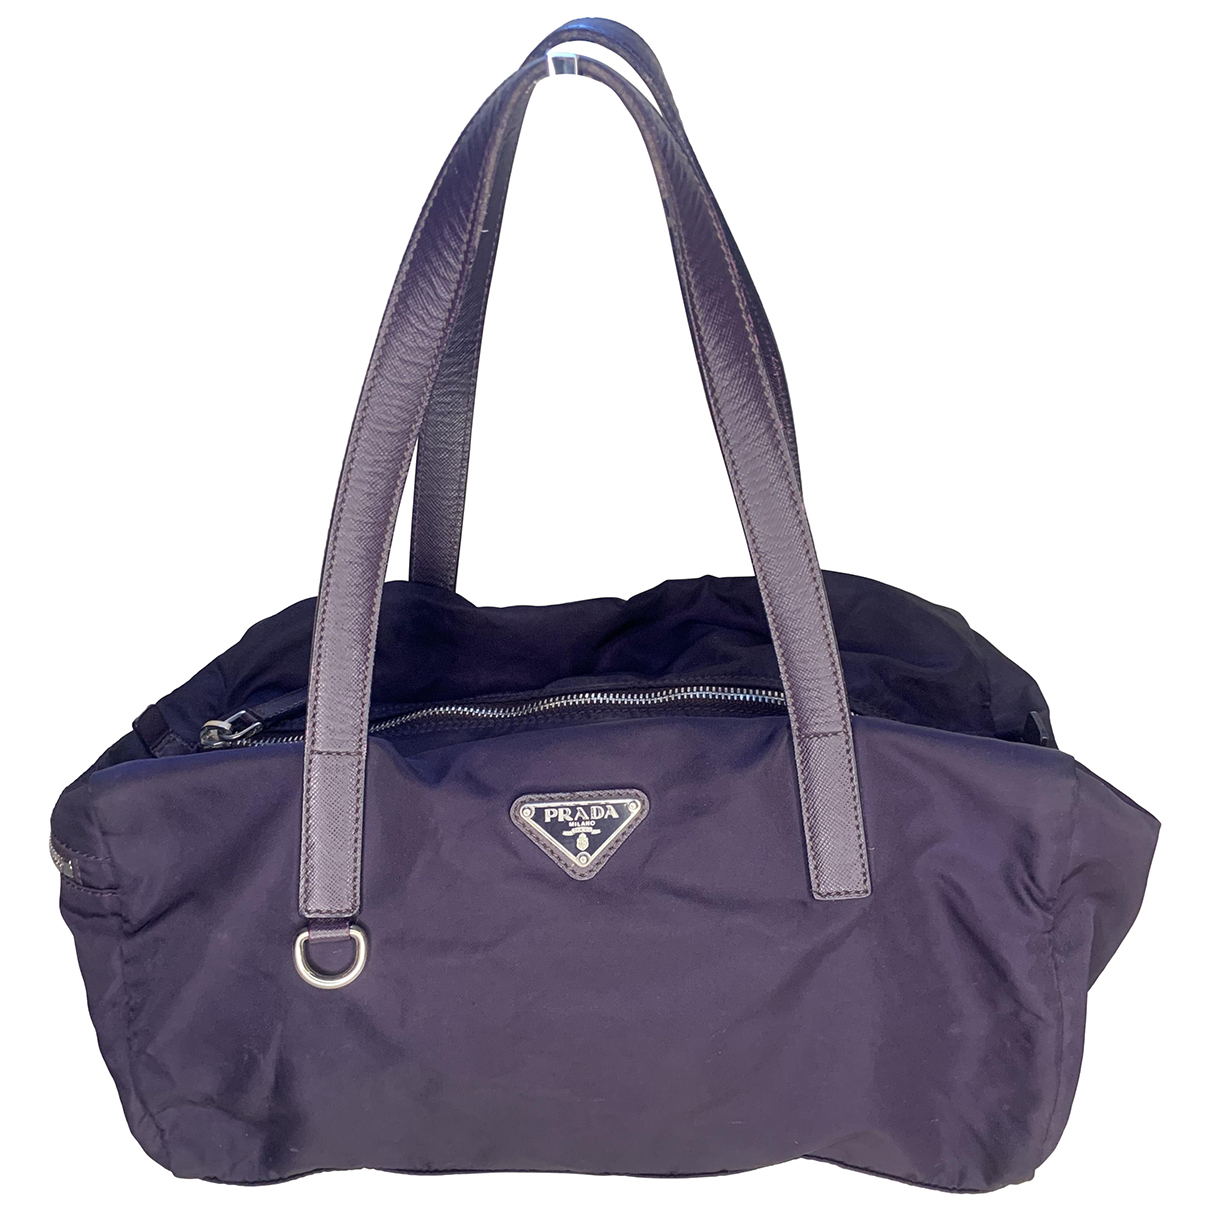 Prada N Purple handbag for Women N